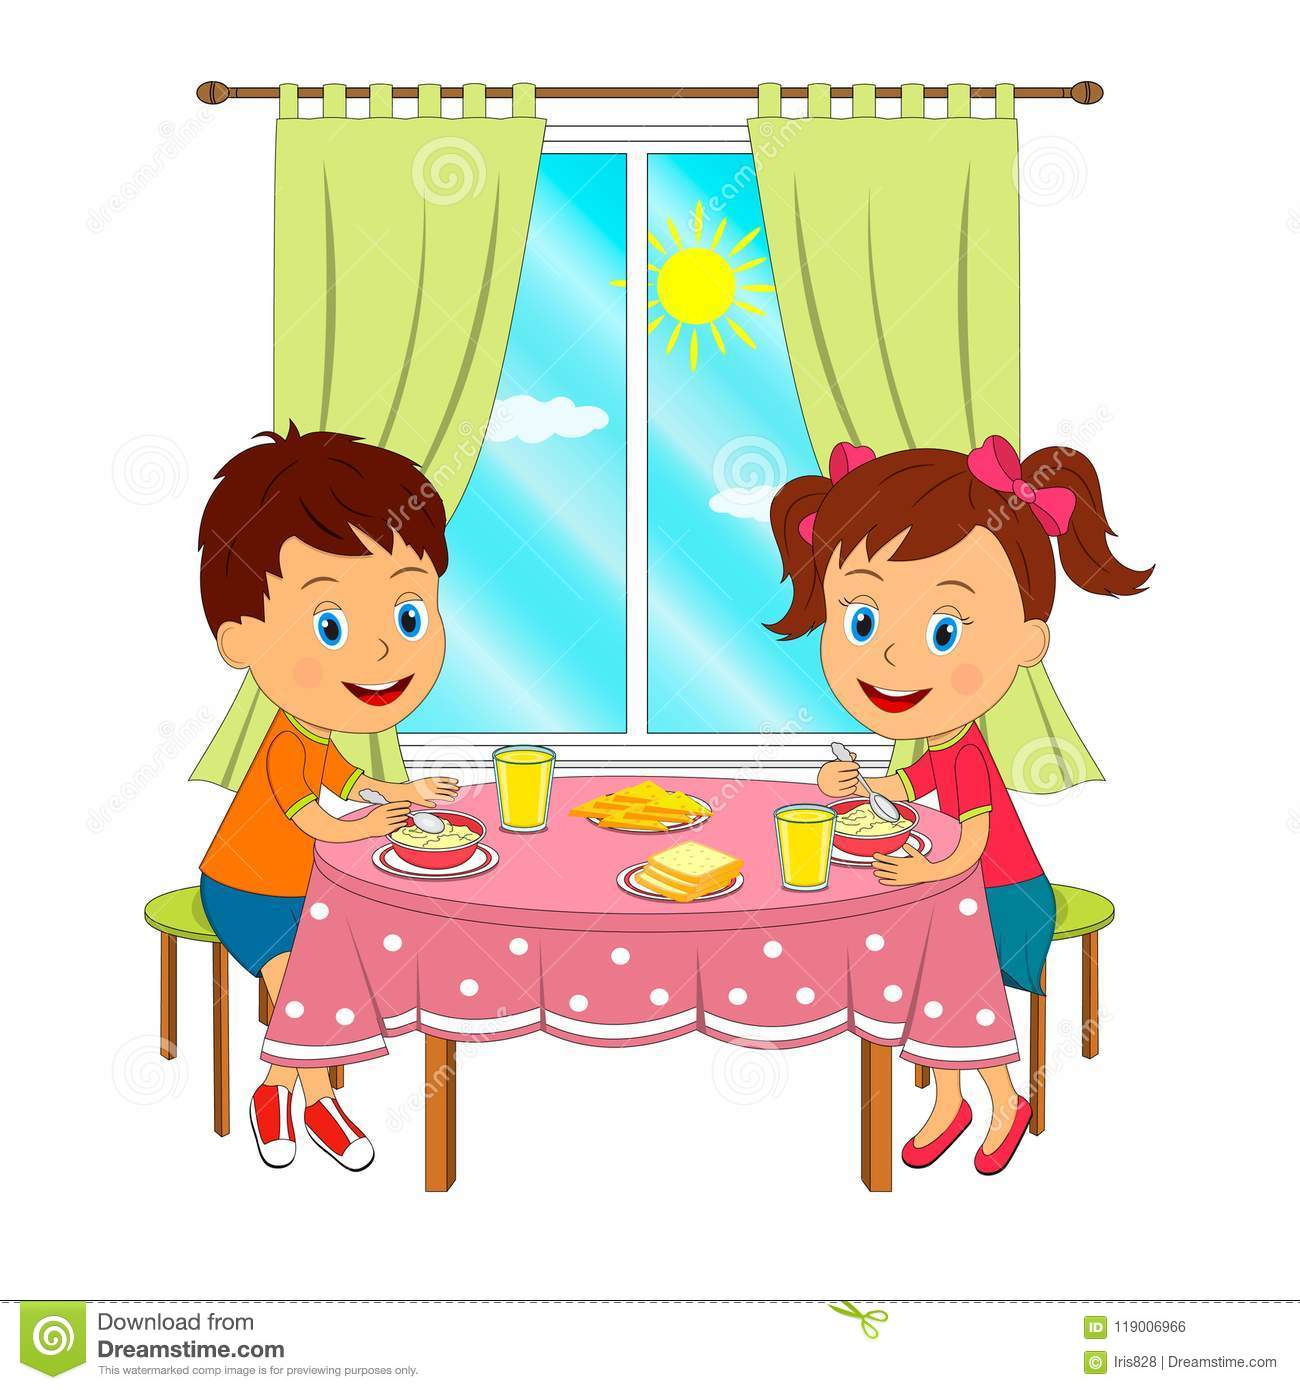 Eating Table Cartoon: Boy And Girl Are Sitting At The Table And Eating Stock